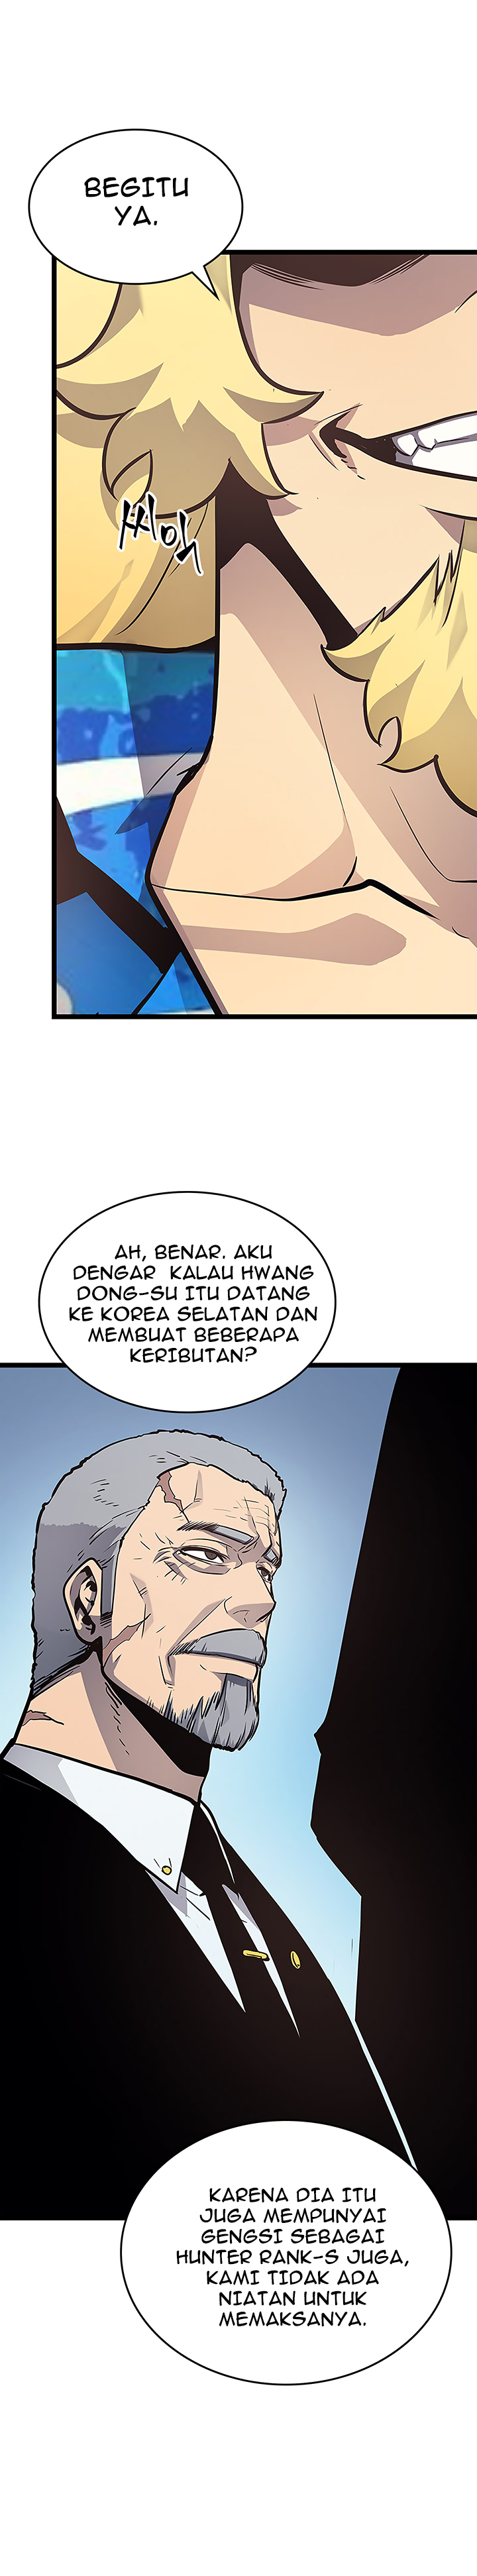 Solo Leveling Chapter 84 Indo gambar 13